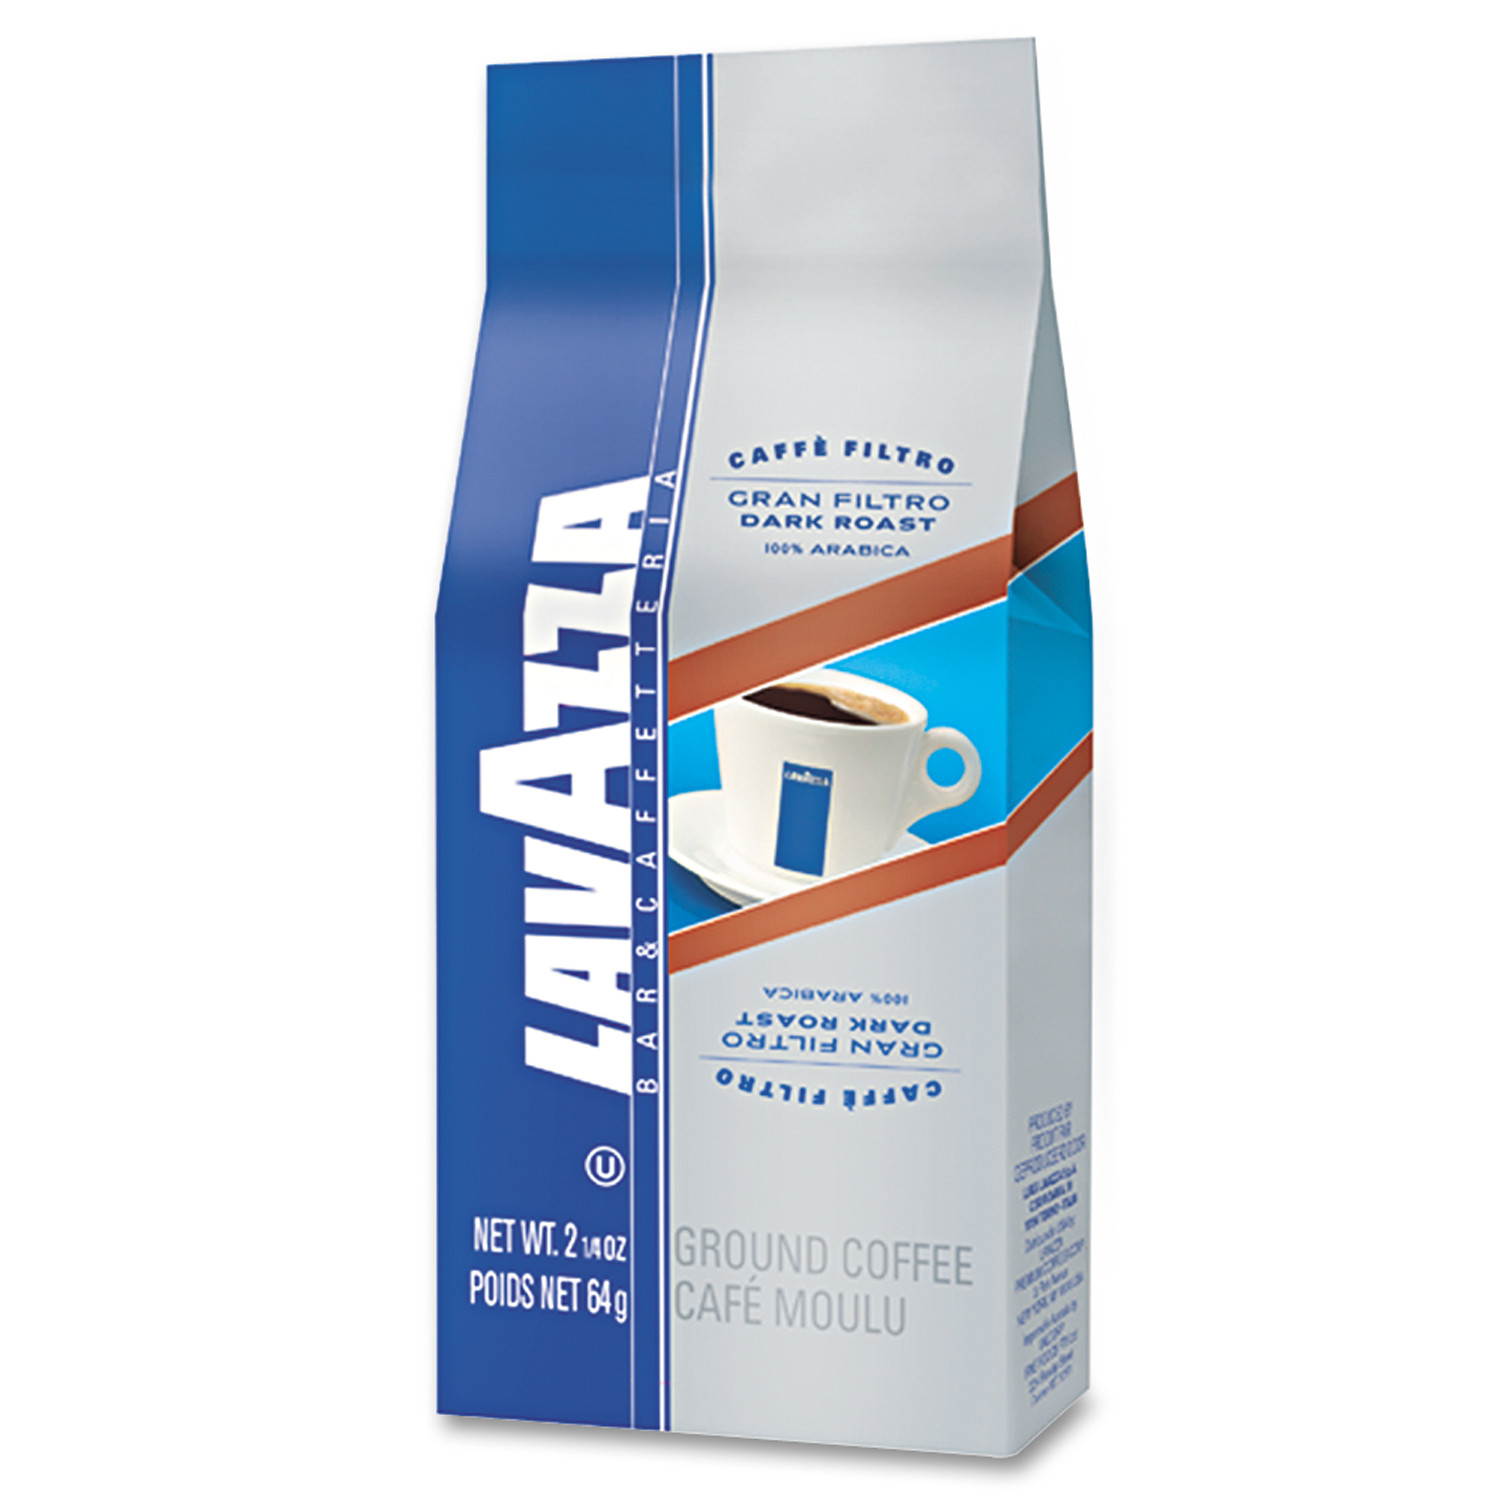 Lavazza Gran Filtro Italian Dark Roast Coffee, 30ct